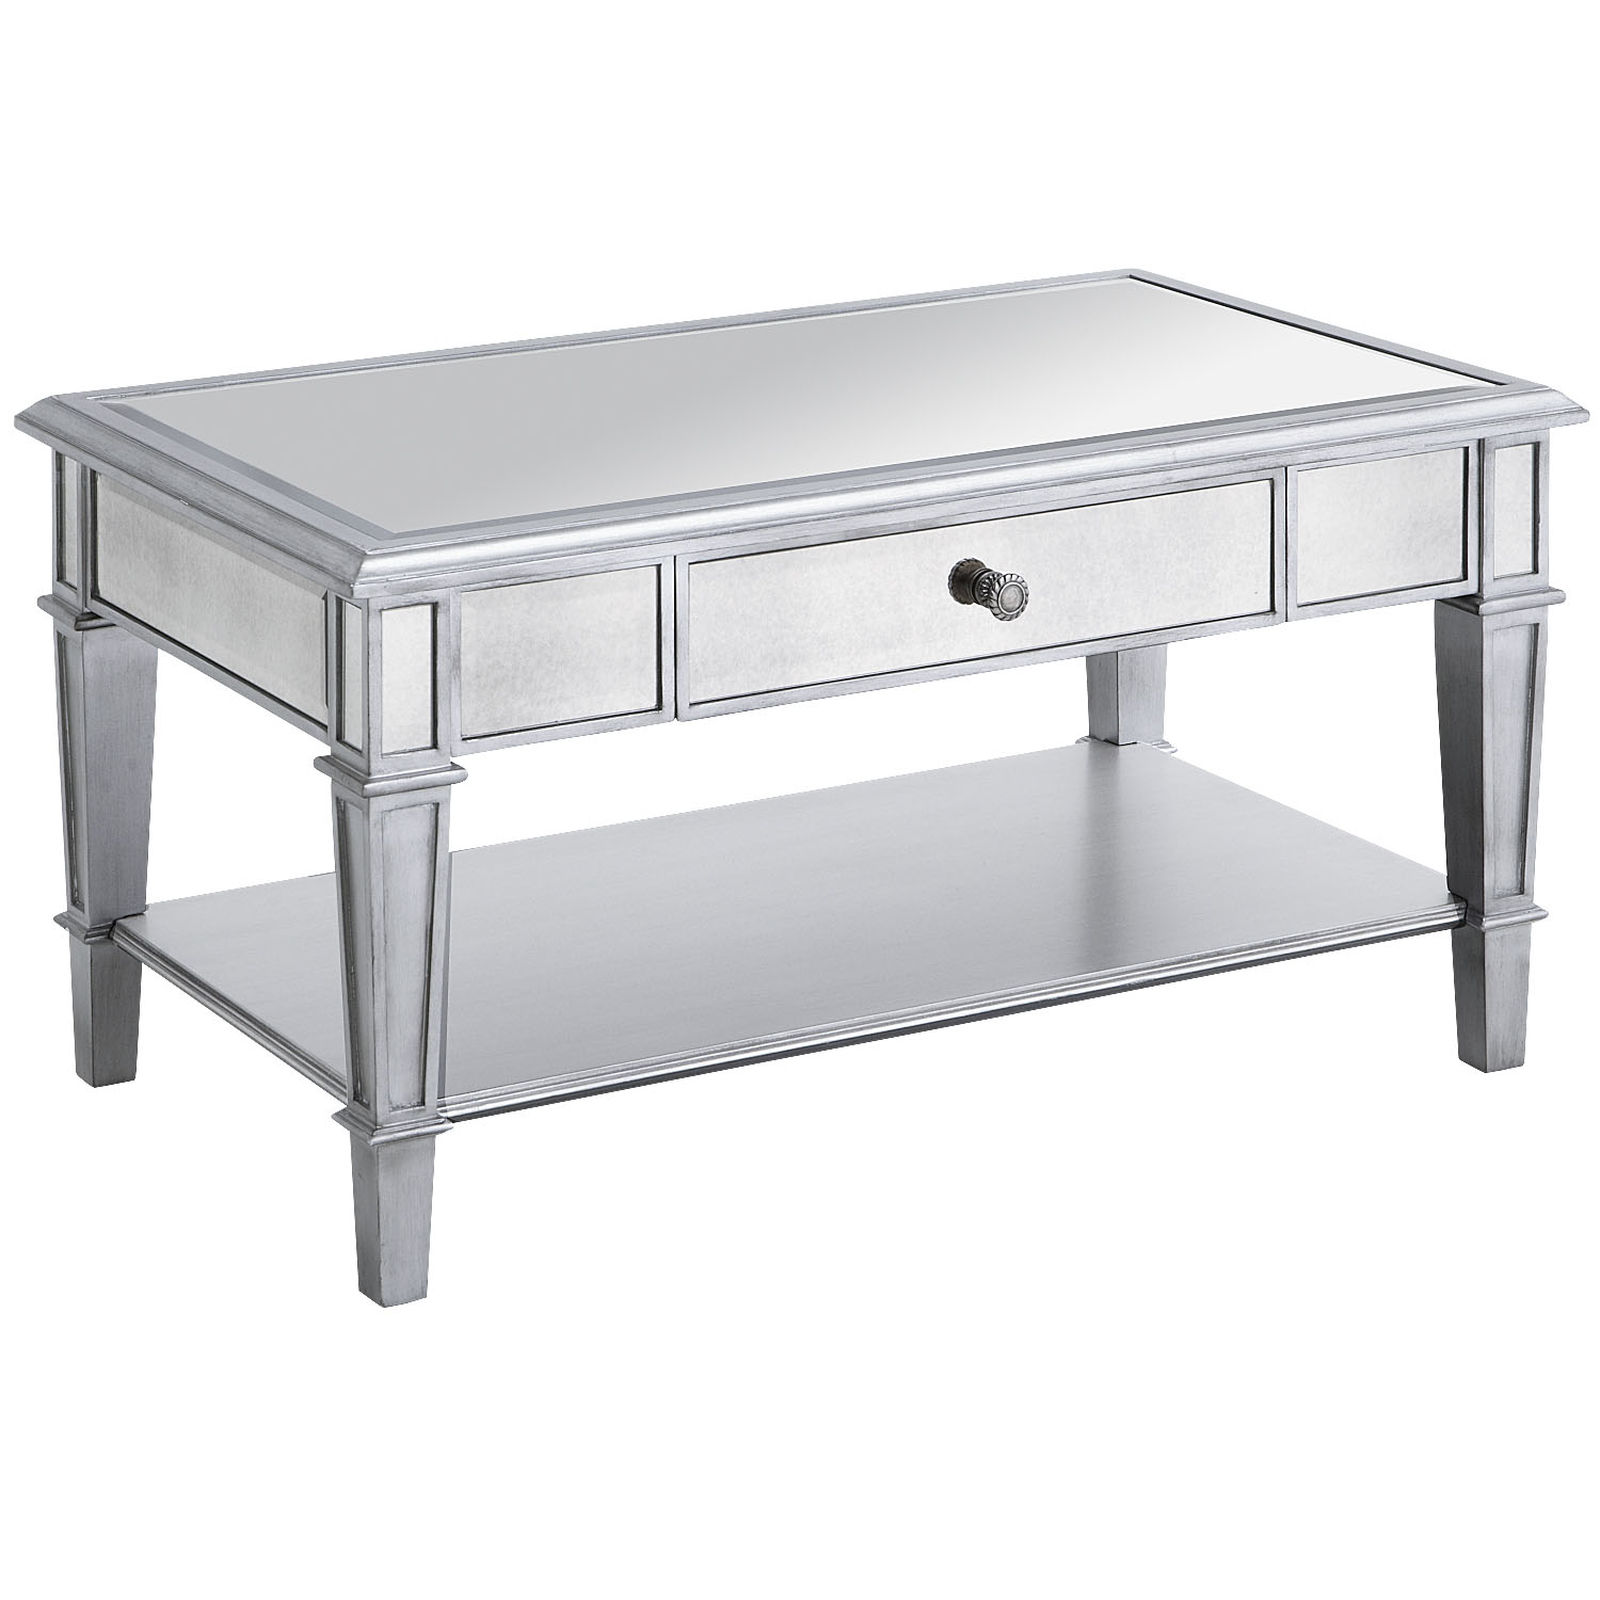 mirrored end tables mirror ideas modern coffee hayworth silver table pier imports for antique round luxury sydney decorating and christmas covers disposable drum accent balcony